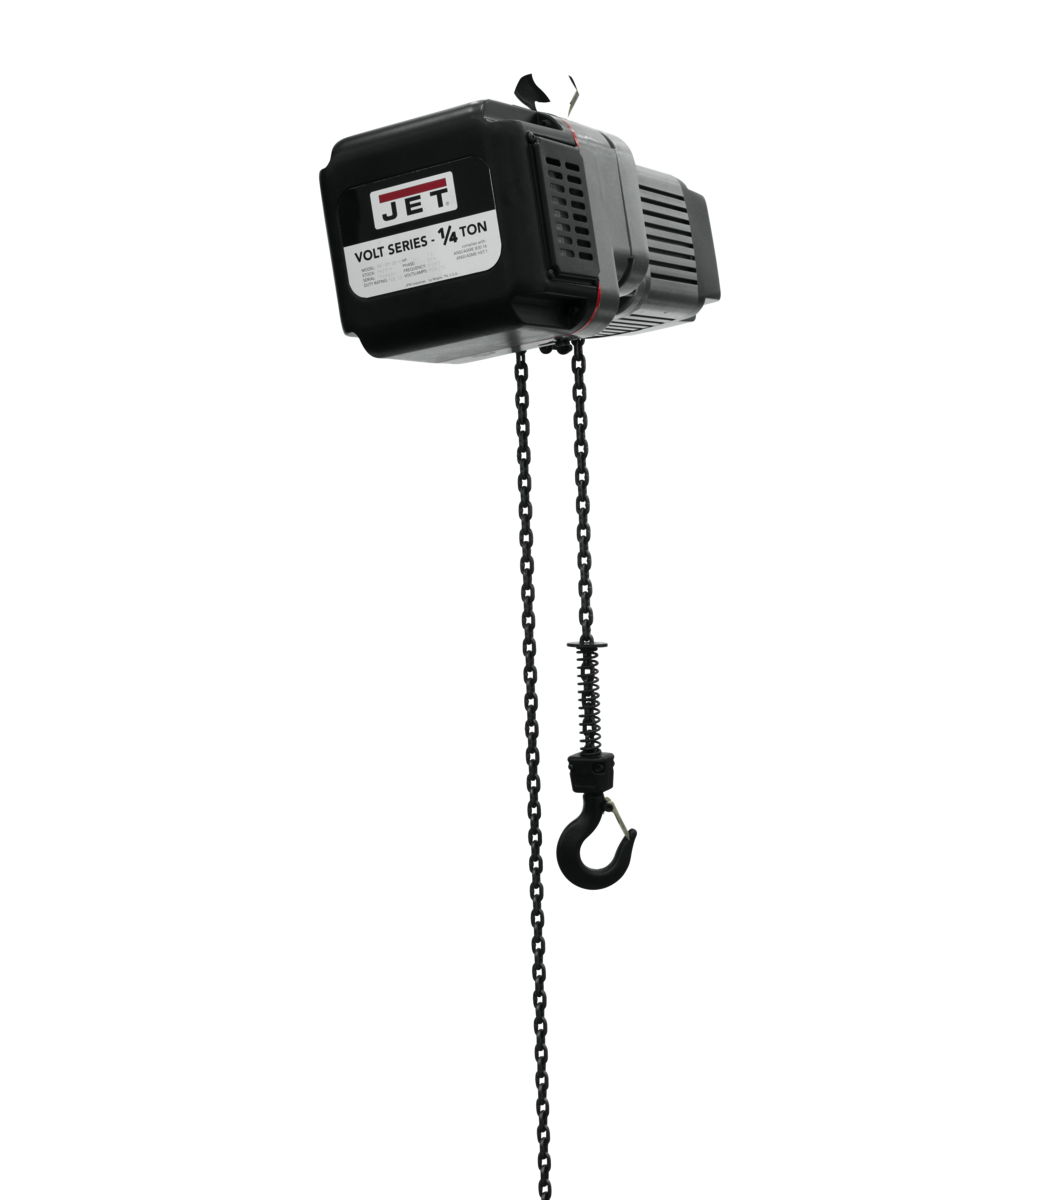 VOLT 1/4T VARIABLE-SPEED ELECTRIC HOIST 1PH/3PH 230V 15' LIFT